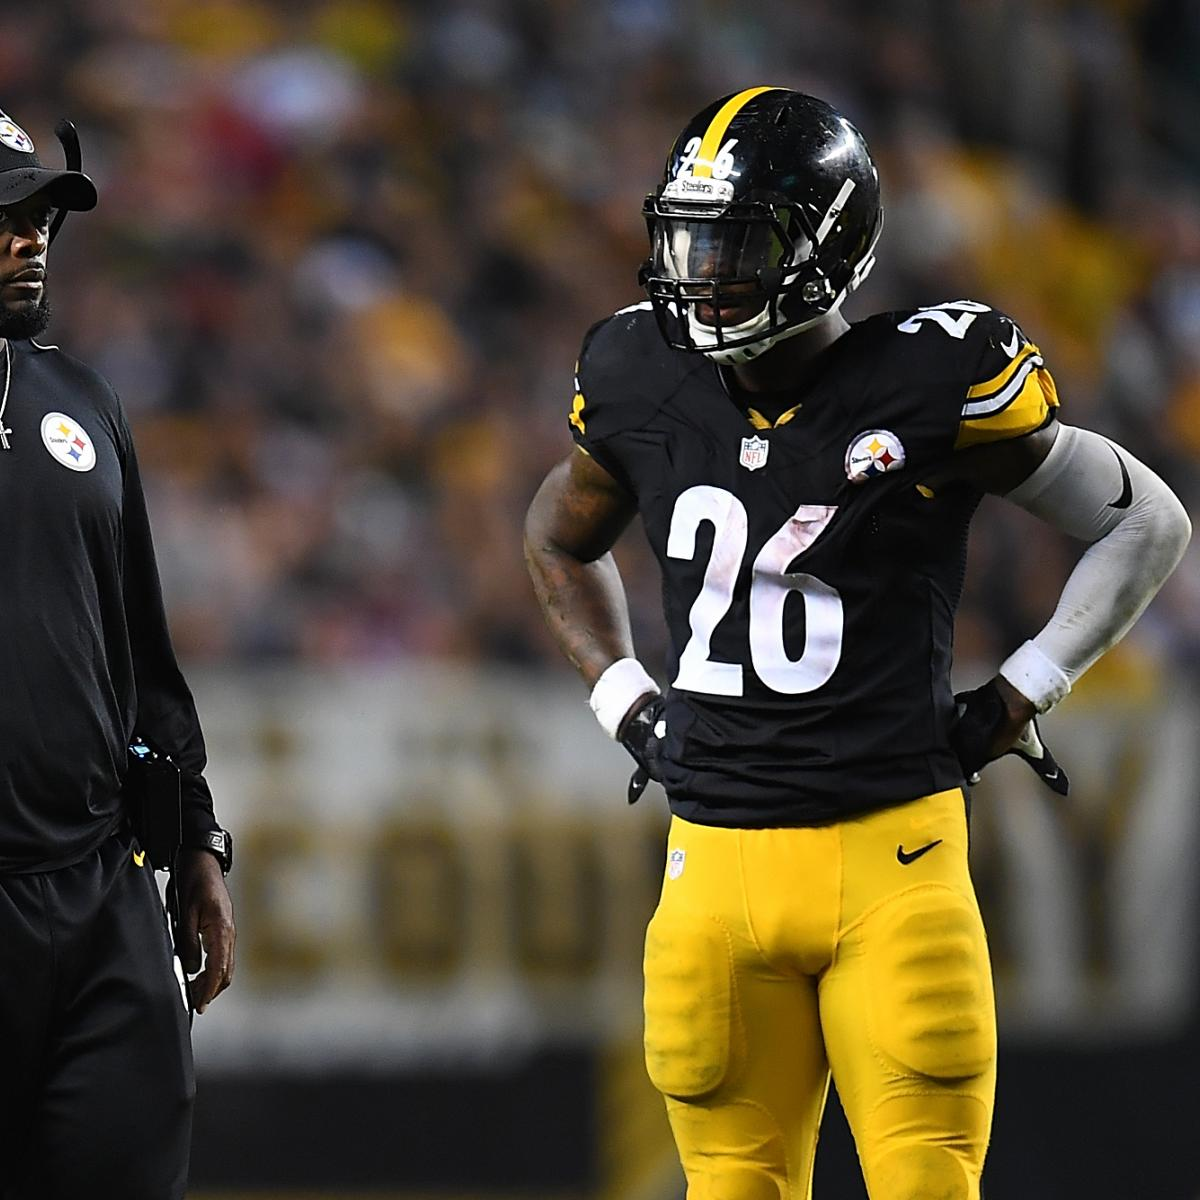 Pittsburgh Steelers Mike Tomlin S New Contract Ushers In: Le'Veon Bell, Mike Tomlin Speak, But Not About Steelers